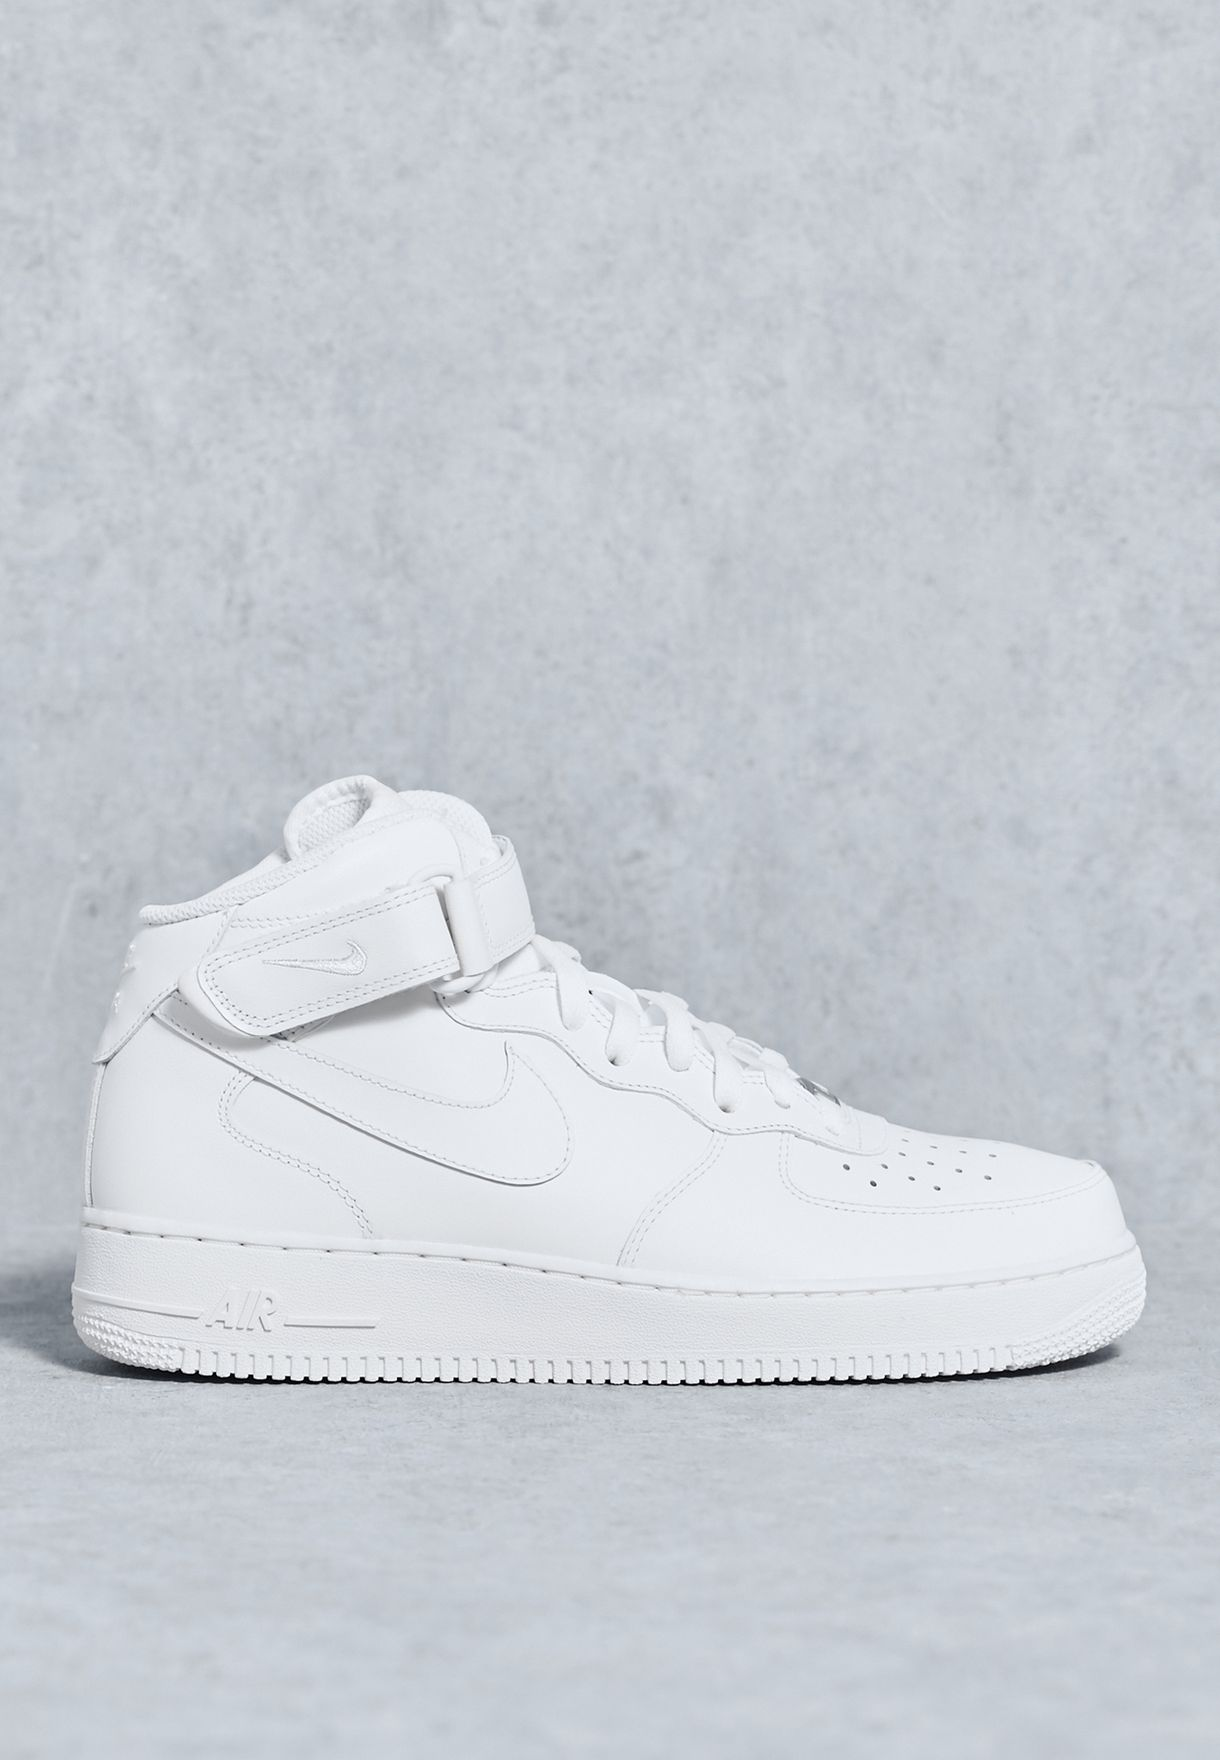 Details about NEW MENS SIZE 12.5 NIKE AIR FORCE 1 MID '07 SHOES SNEAKERS WHITE 315123 111